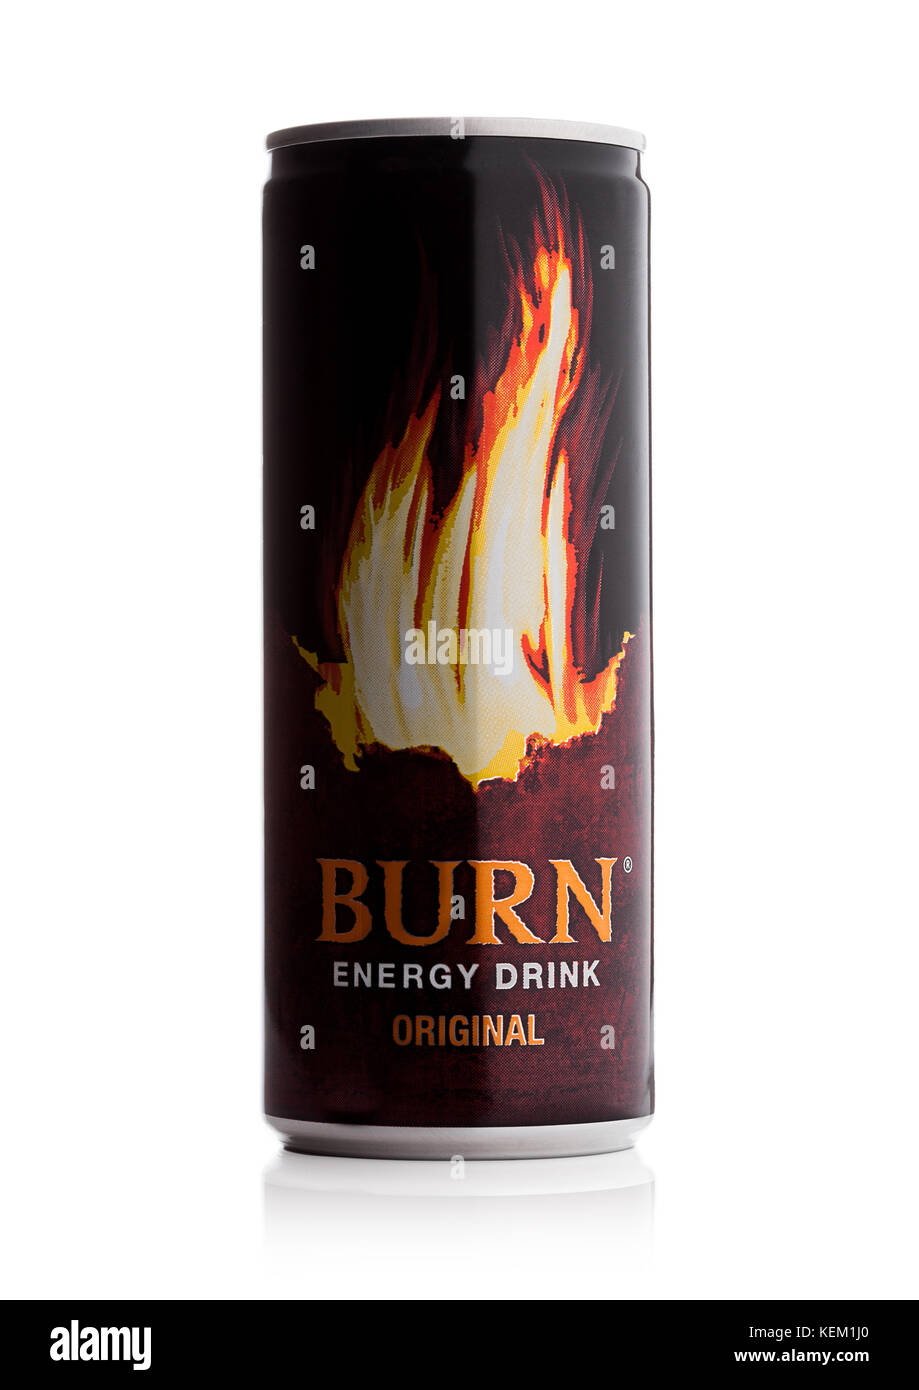 LONDON, UK - OCTOBER 20, 2017: Can of Burn Energy Drink Original on white background. Burn energy is made for keeping - Stock Image